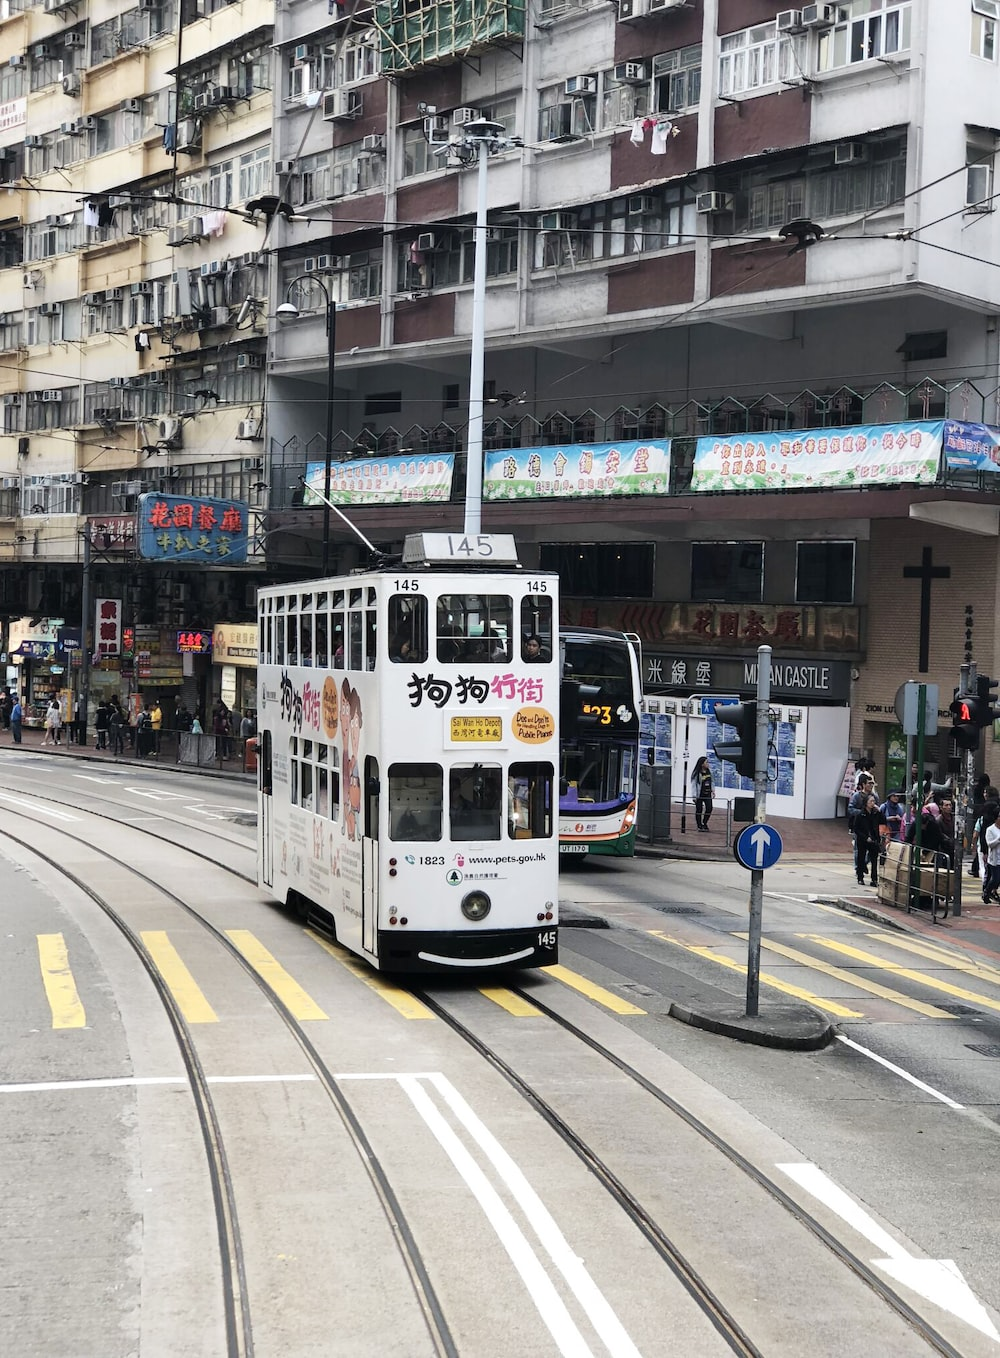 white double-decker bus near white and brown high-rise building at daytime